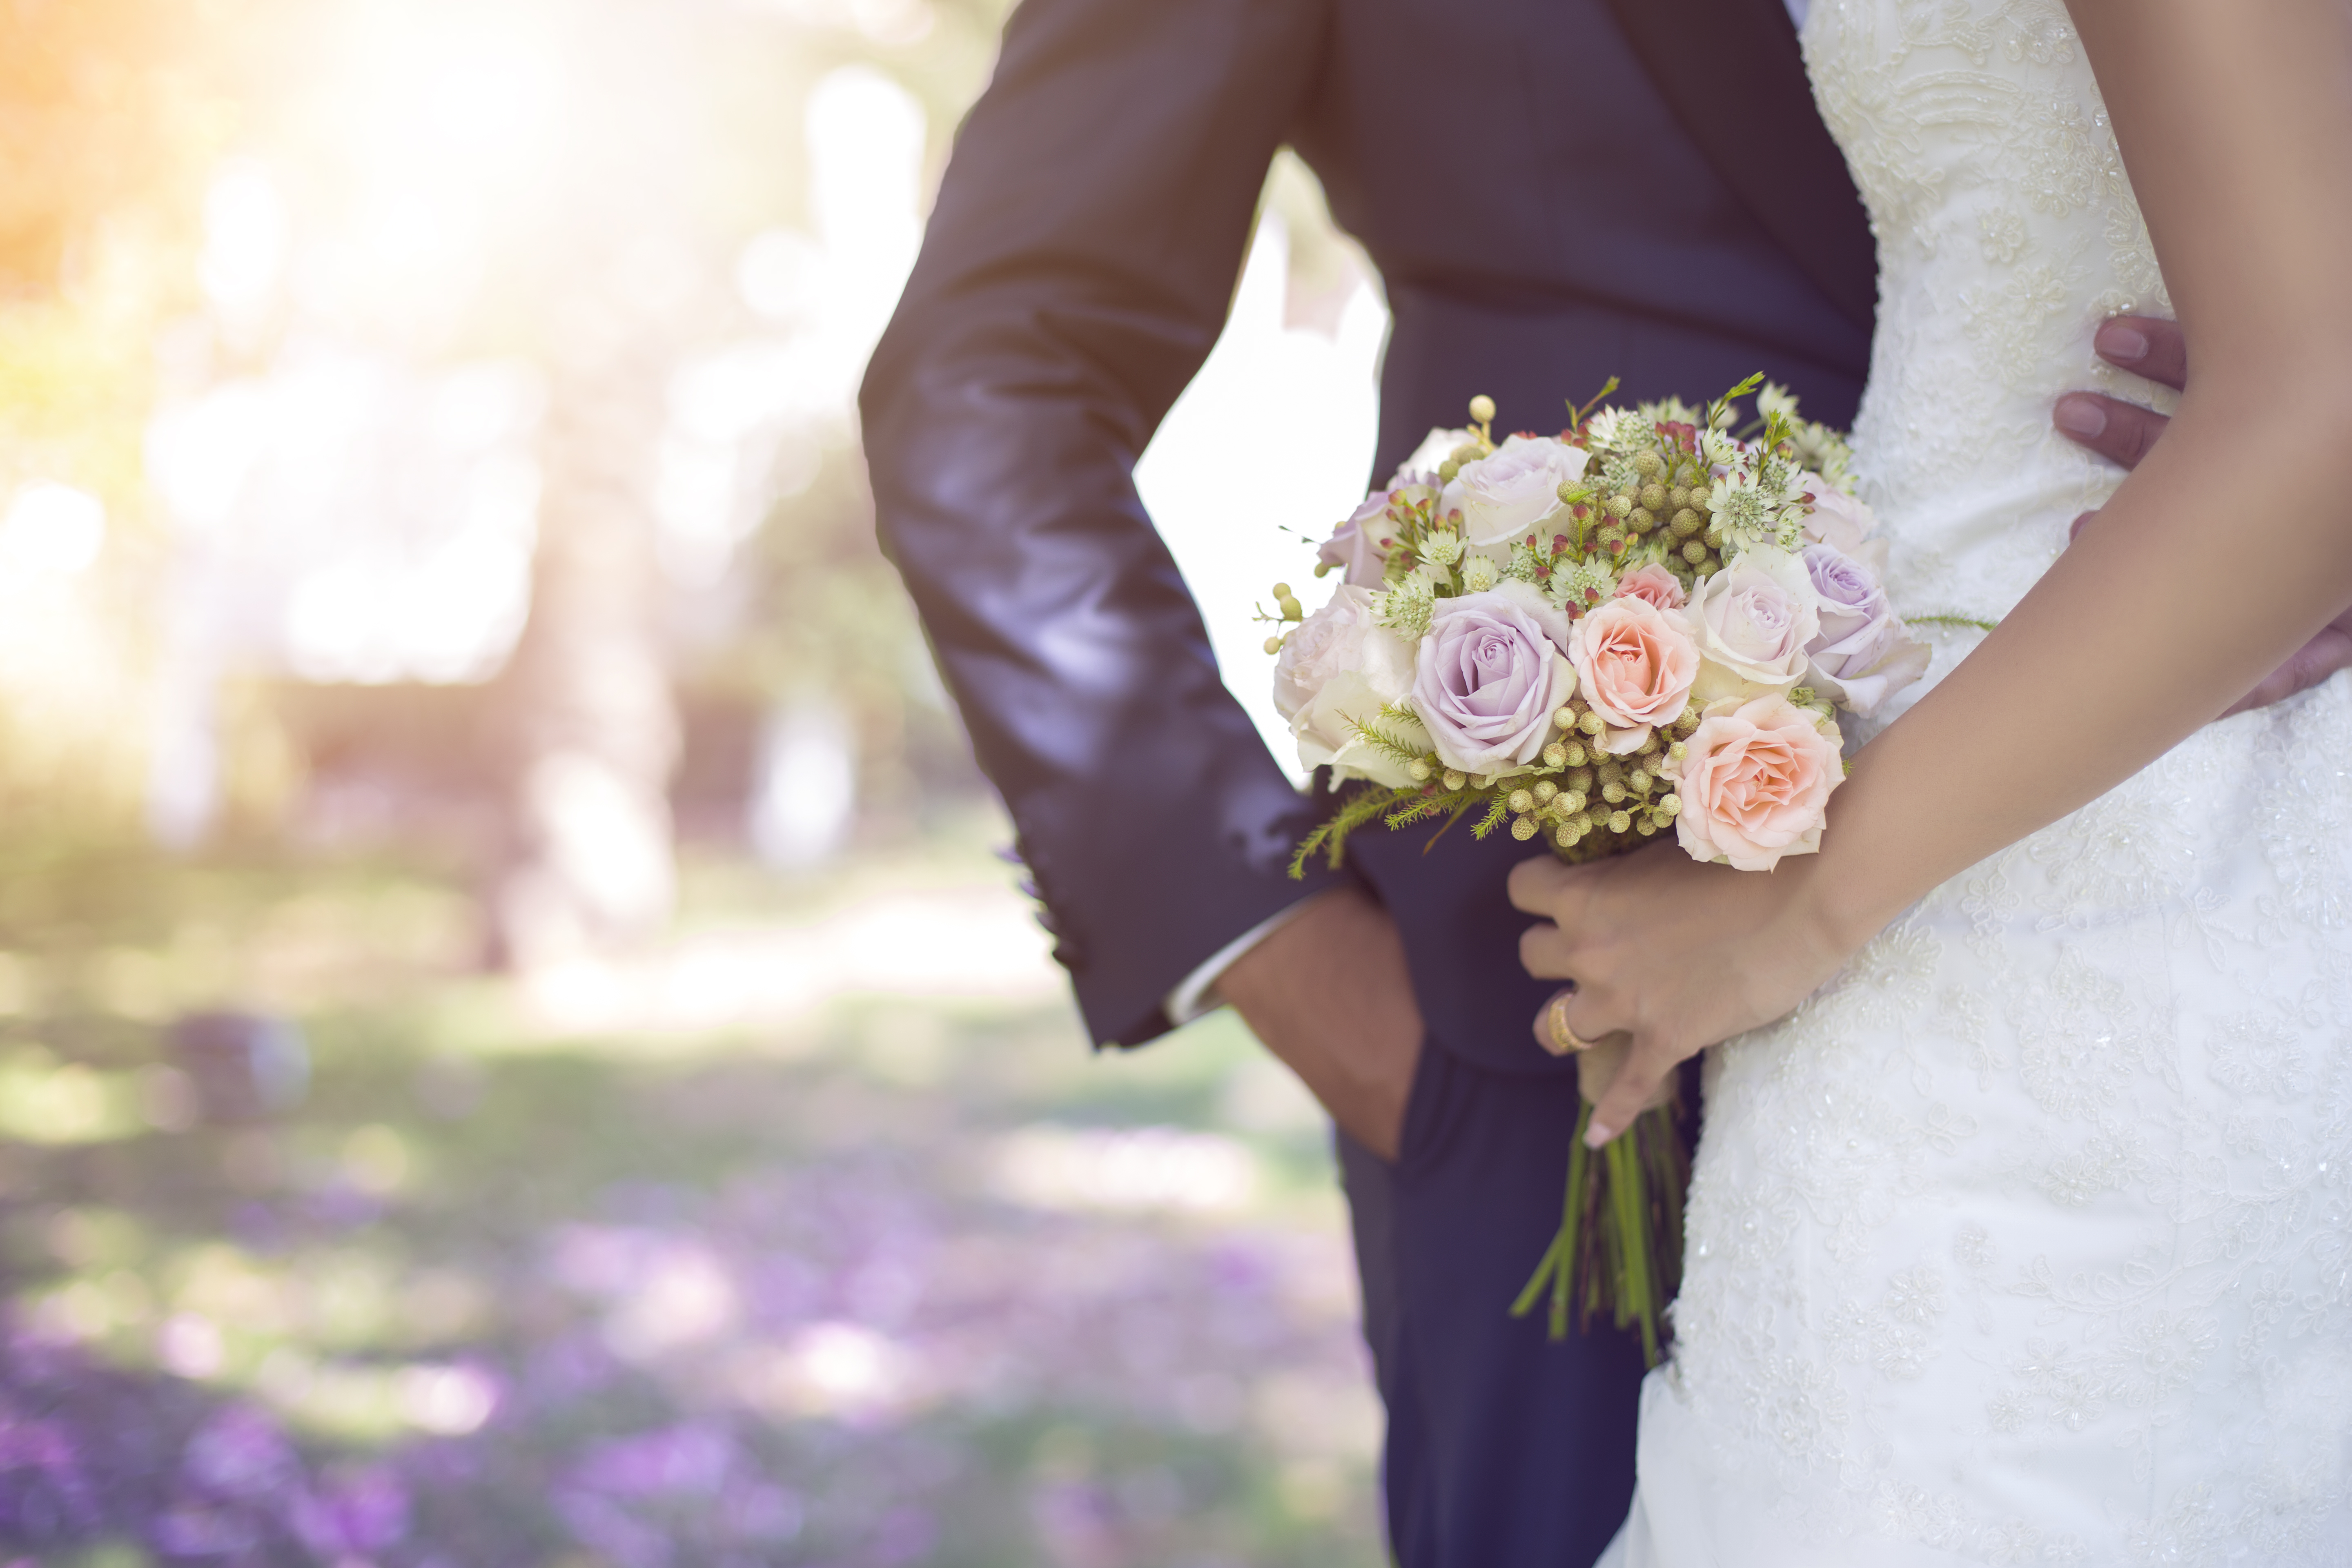 How Long Does It Take To Get A Marriage Certificate Legalbeagle